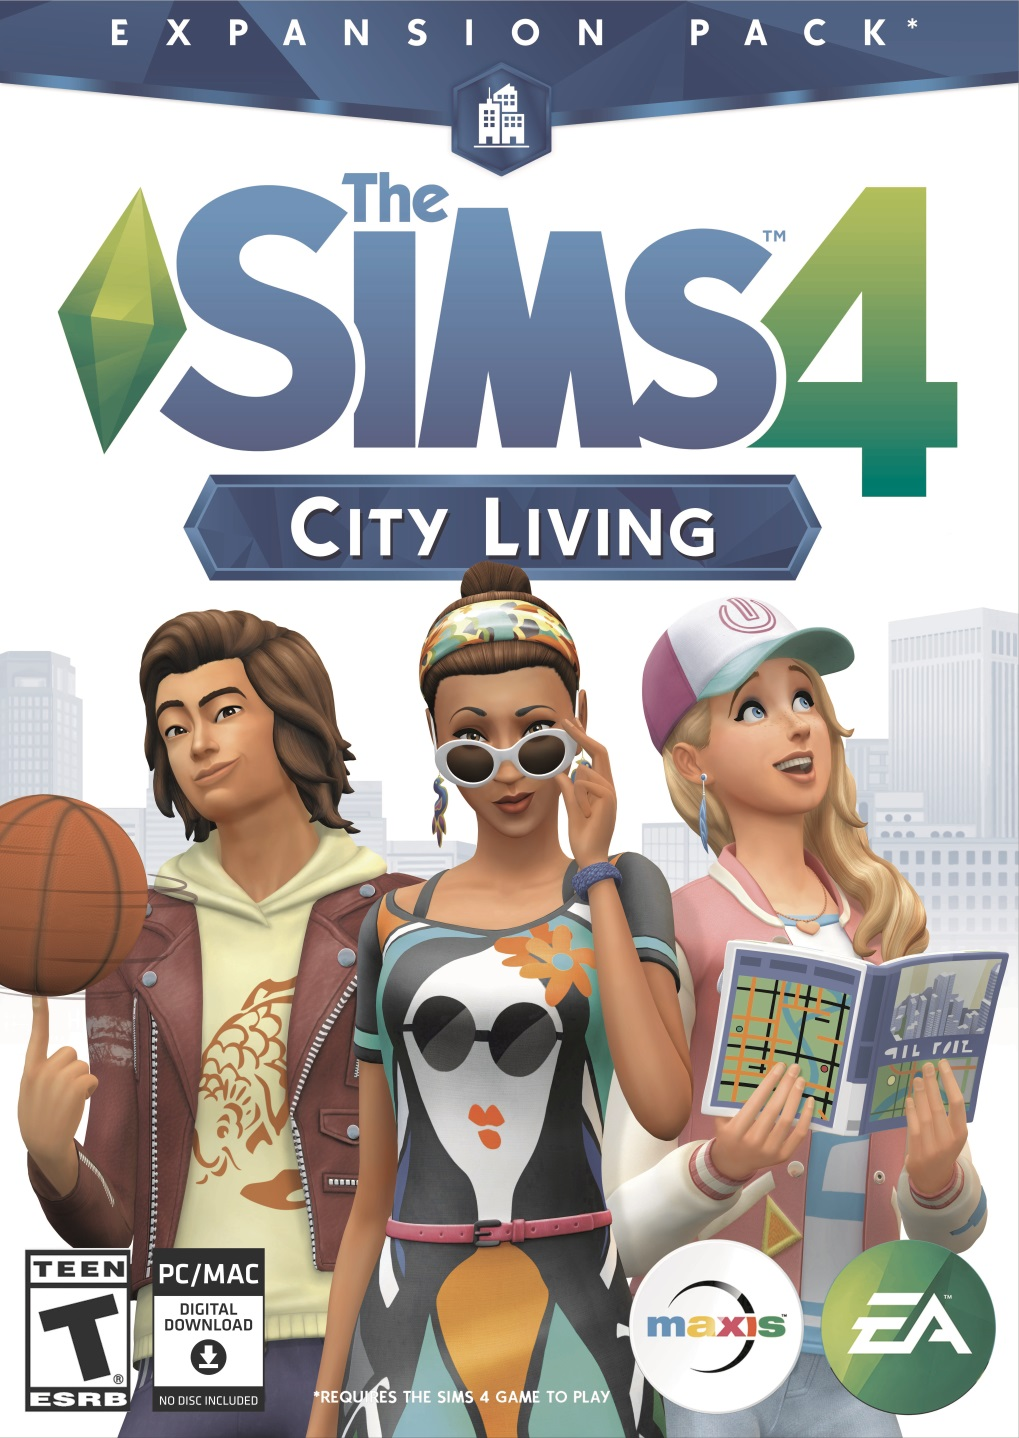 The Sims 4 City Living [Online Game Code] by Electronic Arts